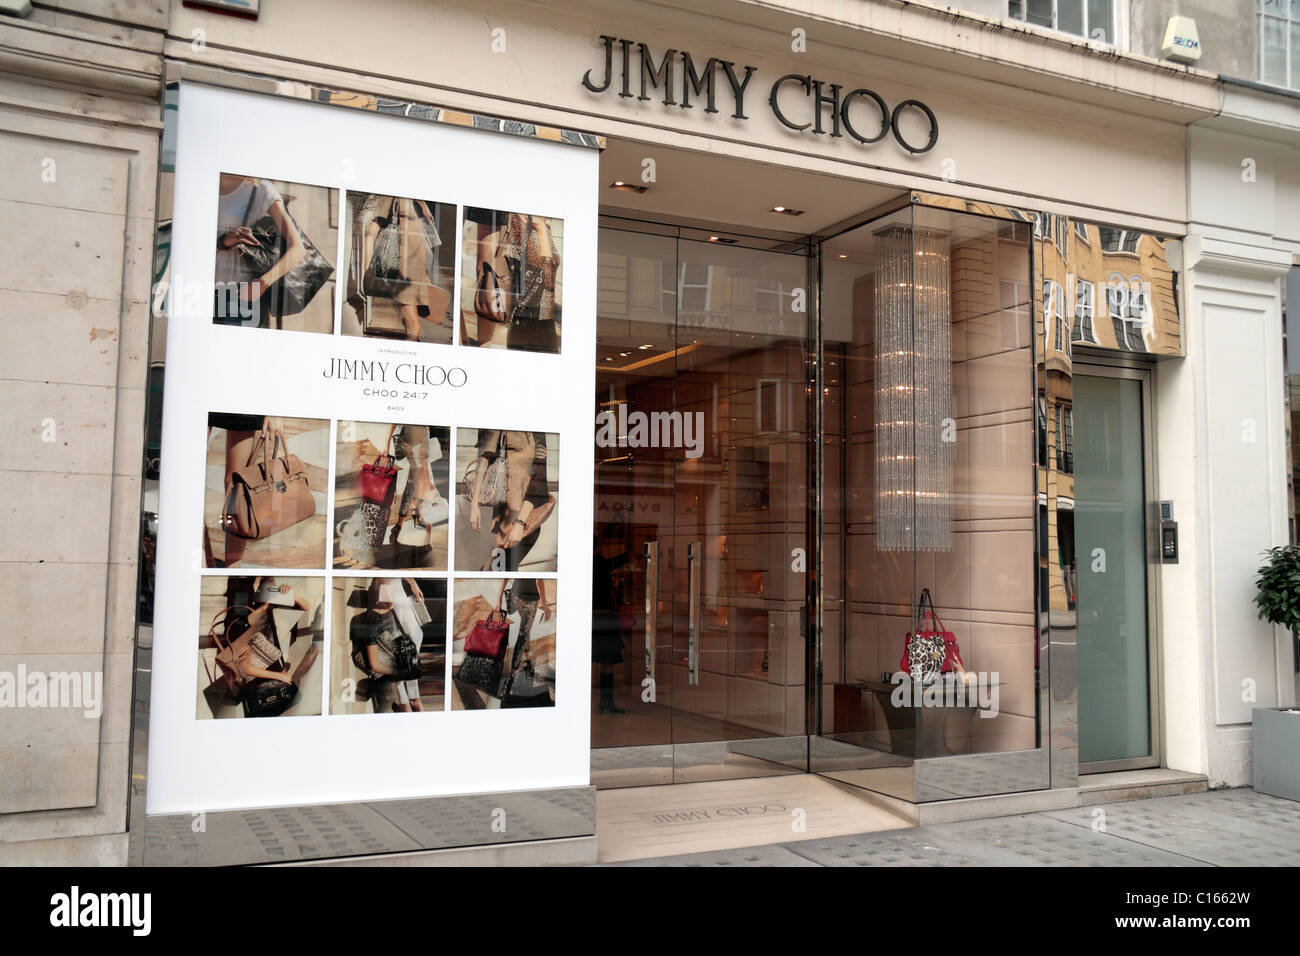 0277dfdaf465 The Jimmy Choo designer shoe and fashion accessory store on Sloane Street